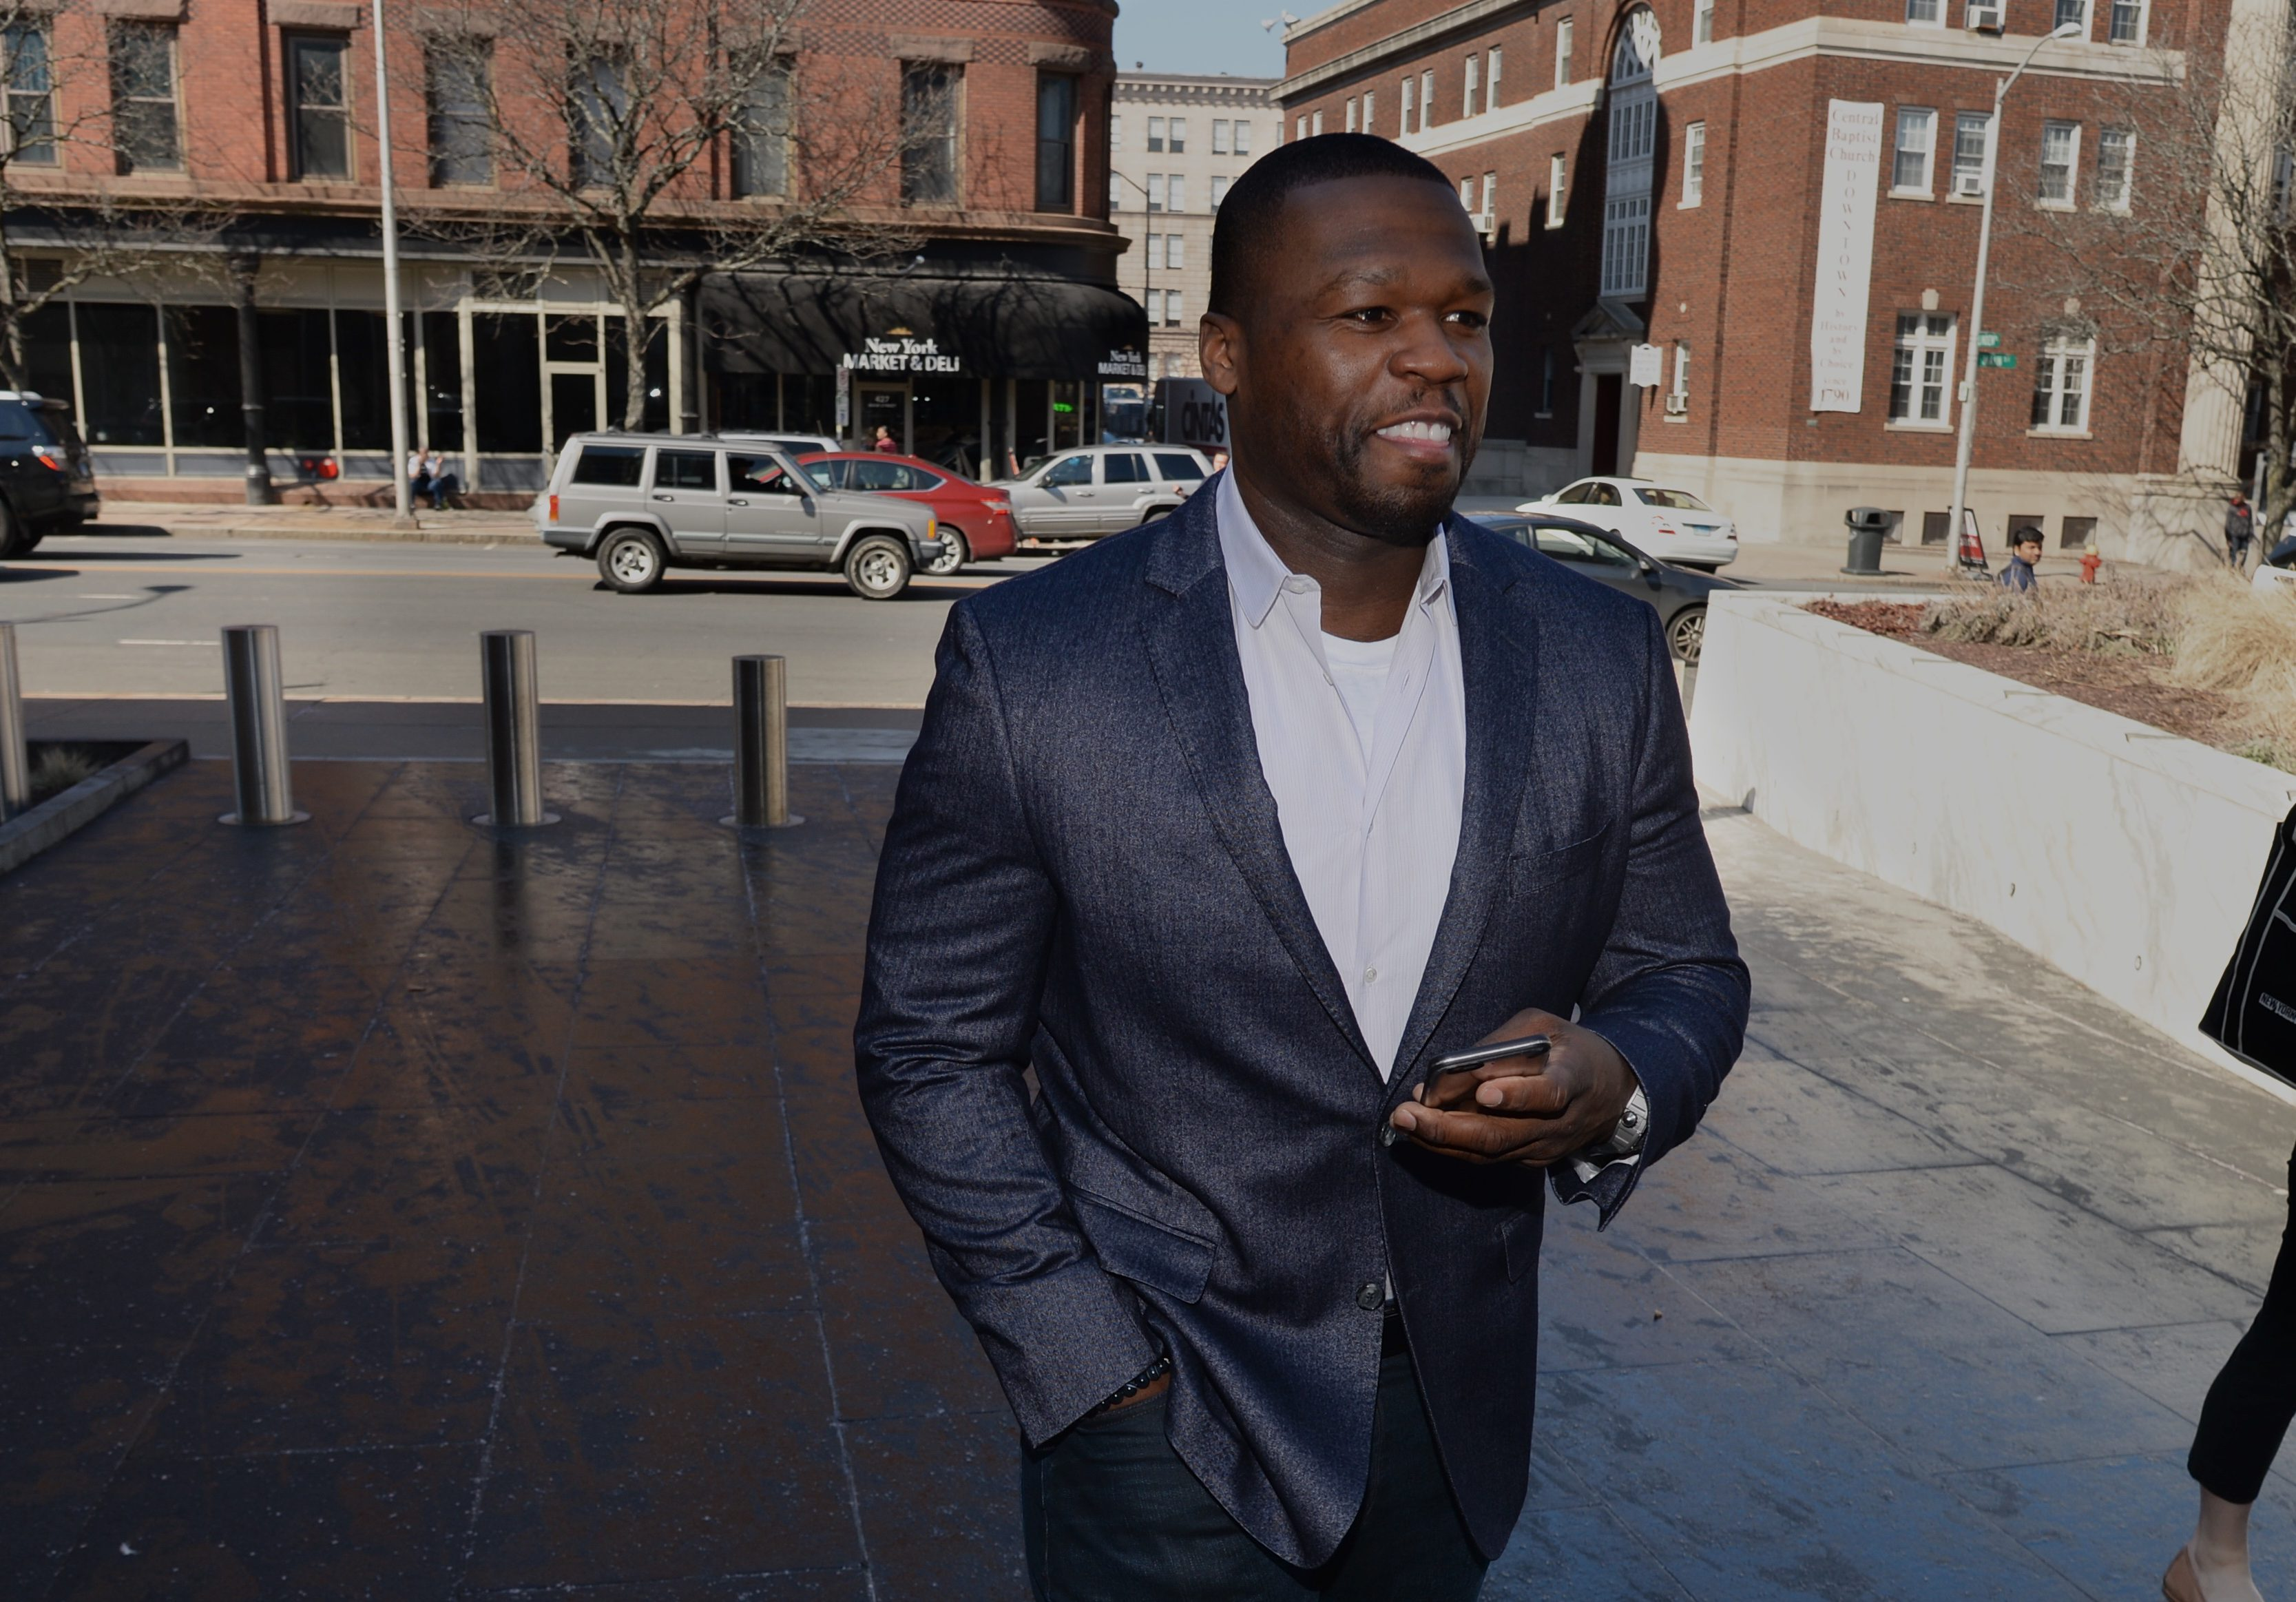 50 Cent suing former lawyers for $32 million after losing sex tape case